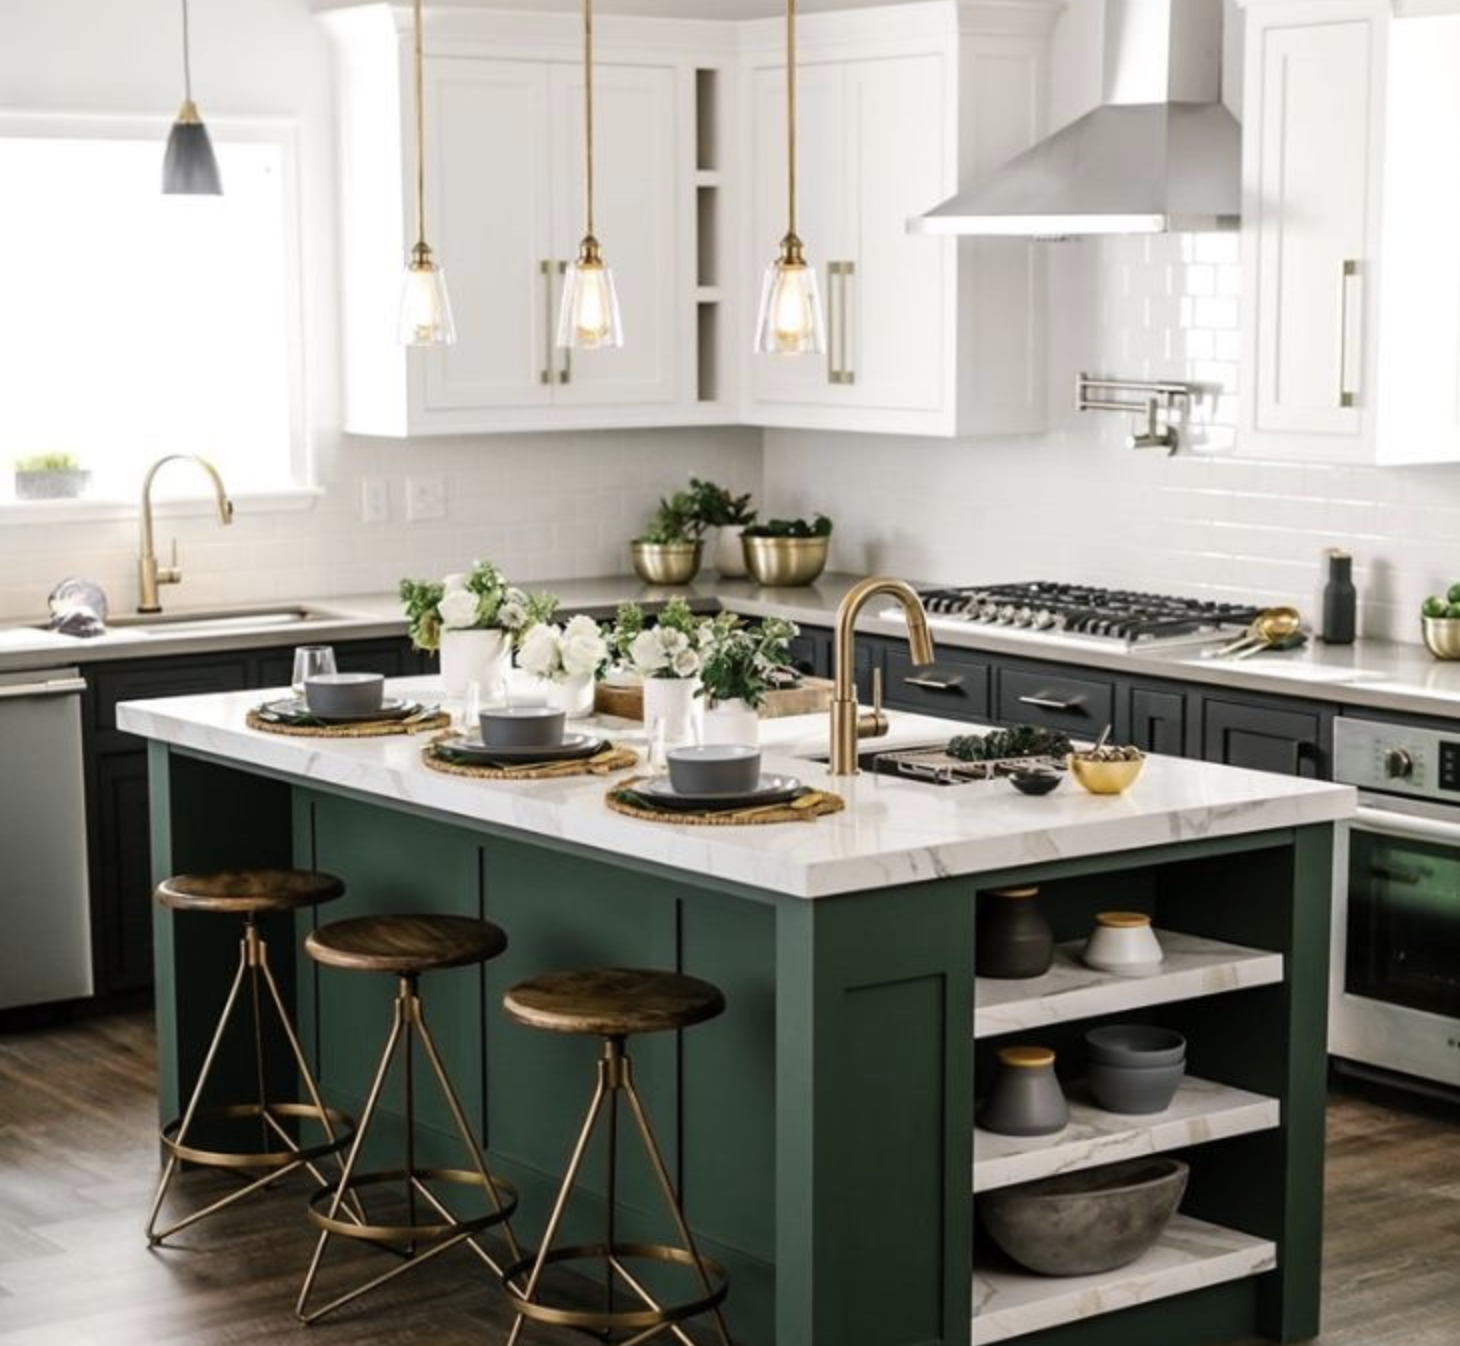 Transform Your Kitchen in Four Easy Steps